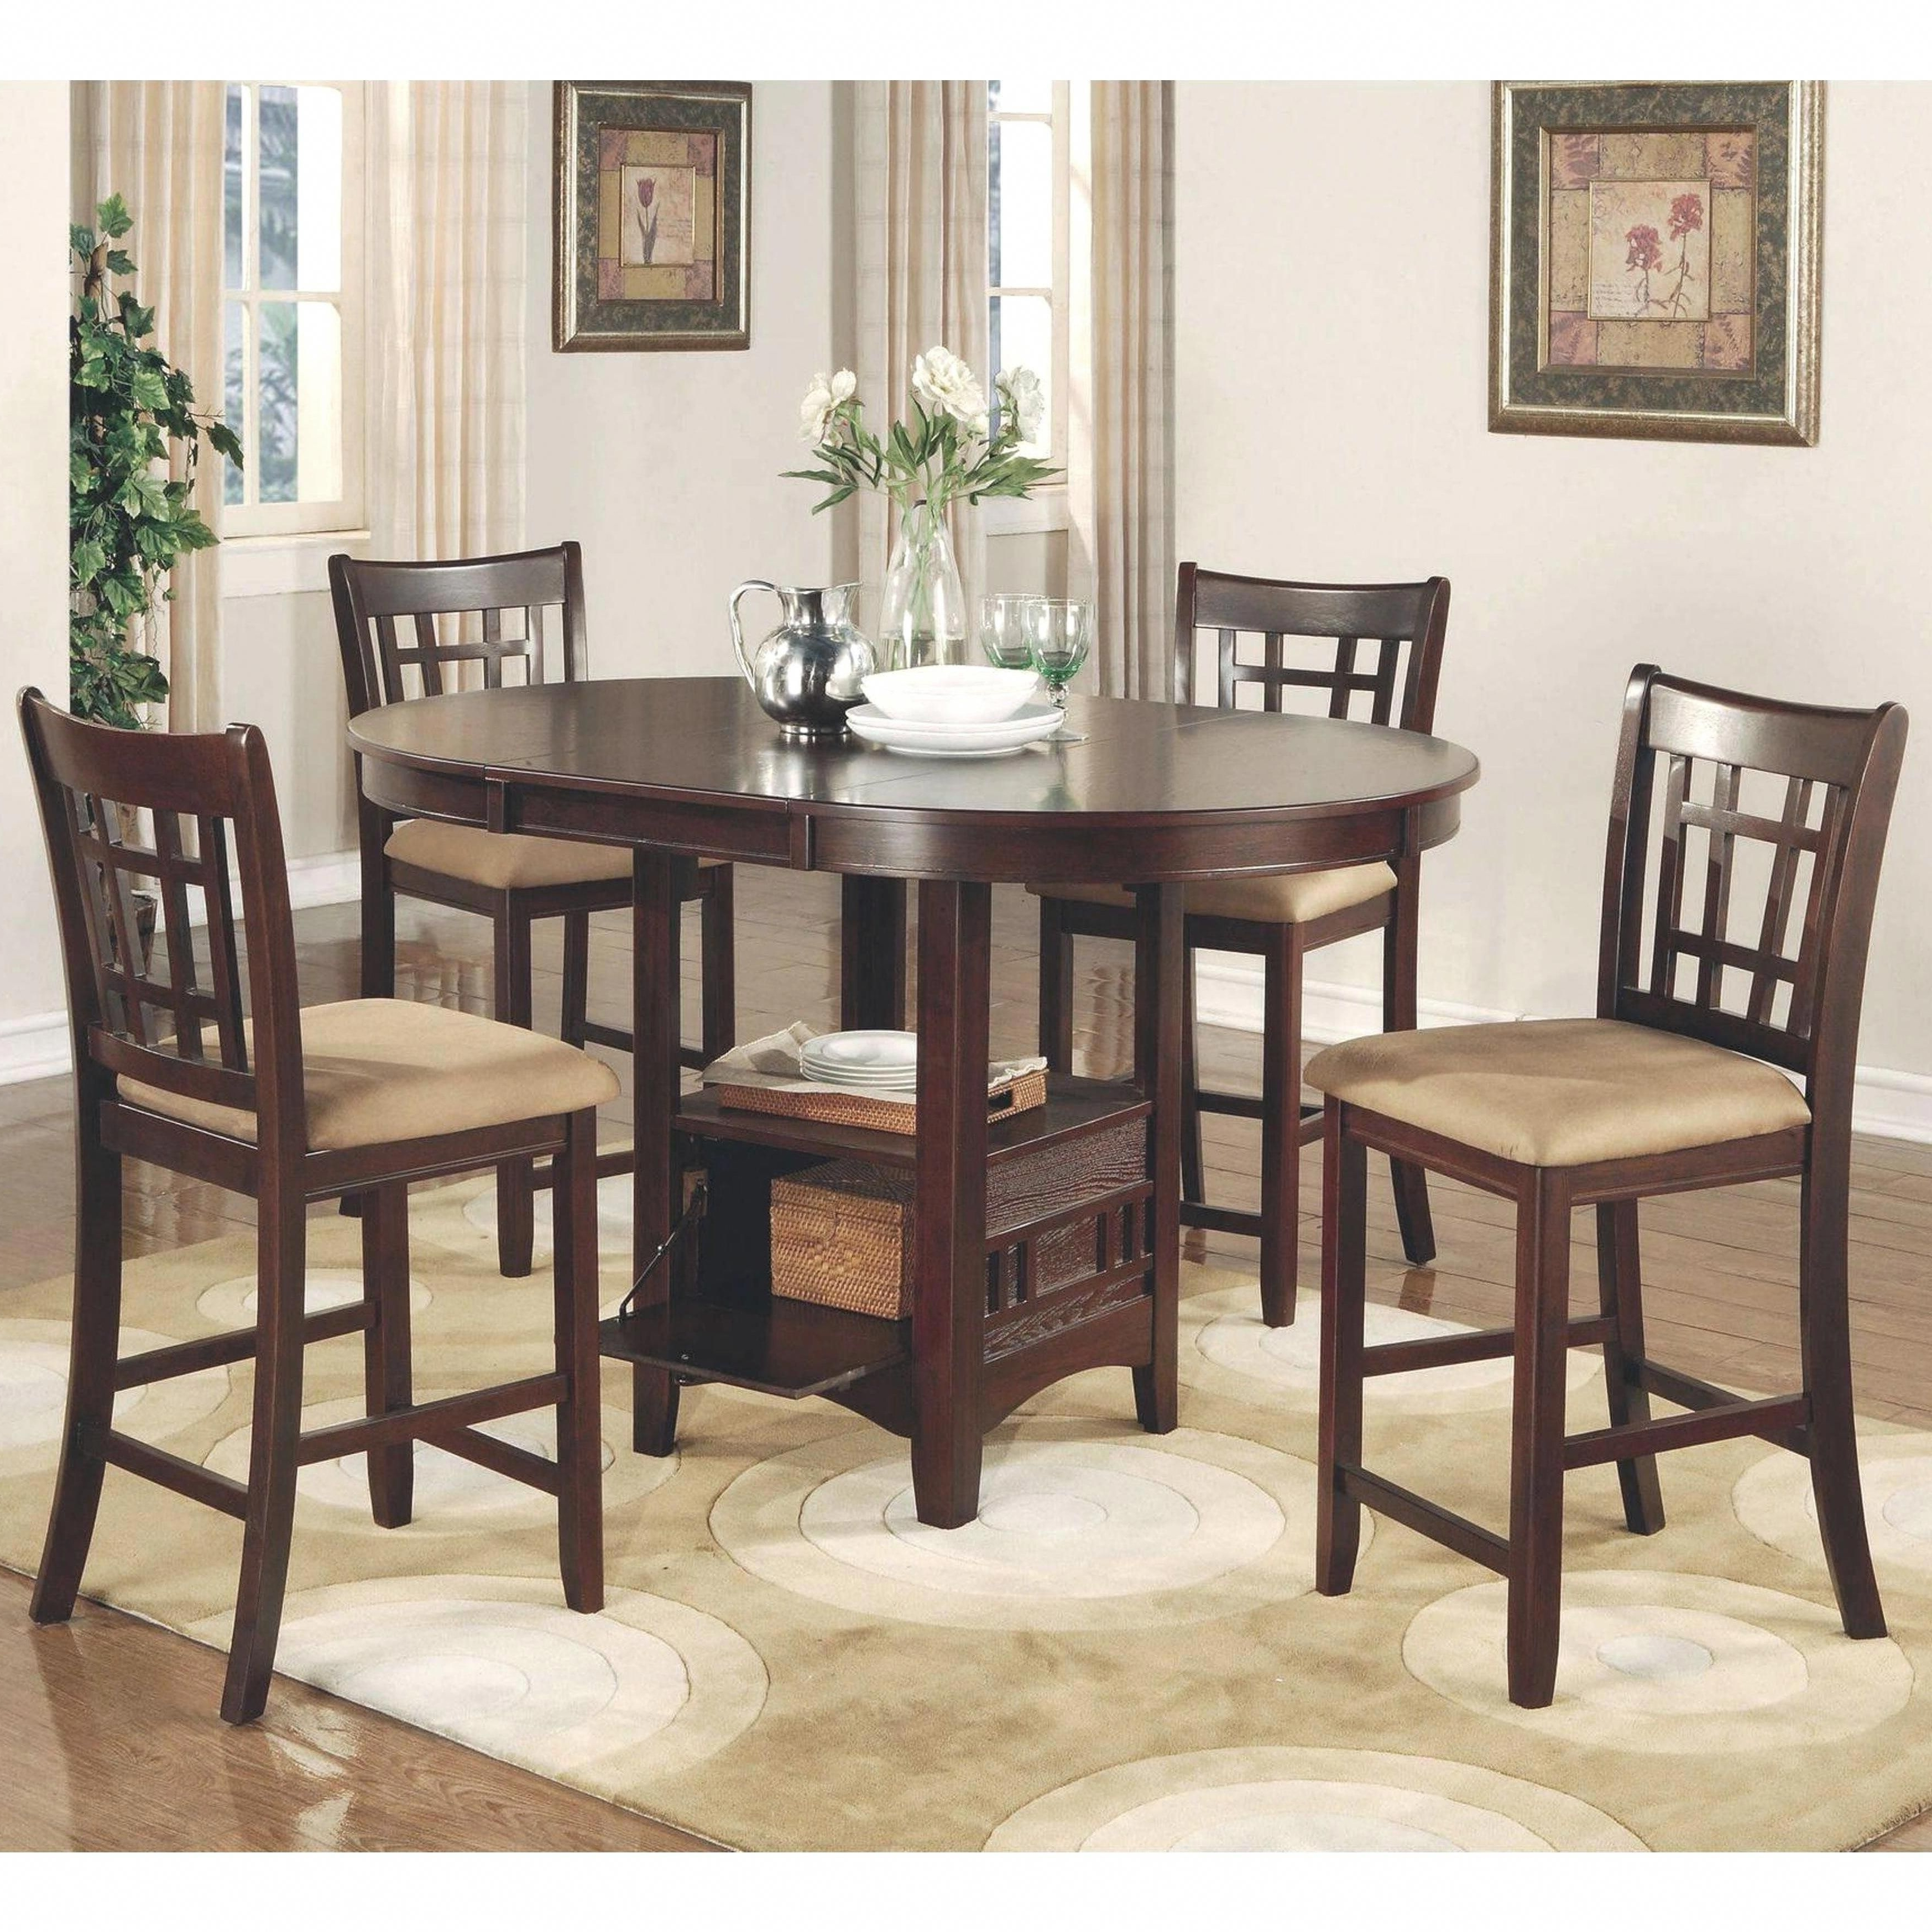 2017 Market 7 Piece Dining Sets With Side Chairs with regard to Azalea Warm Brown Counter Height Dining Set (1 Table - 6 Stools